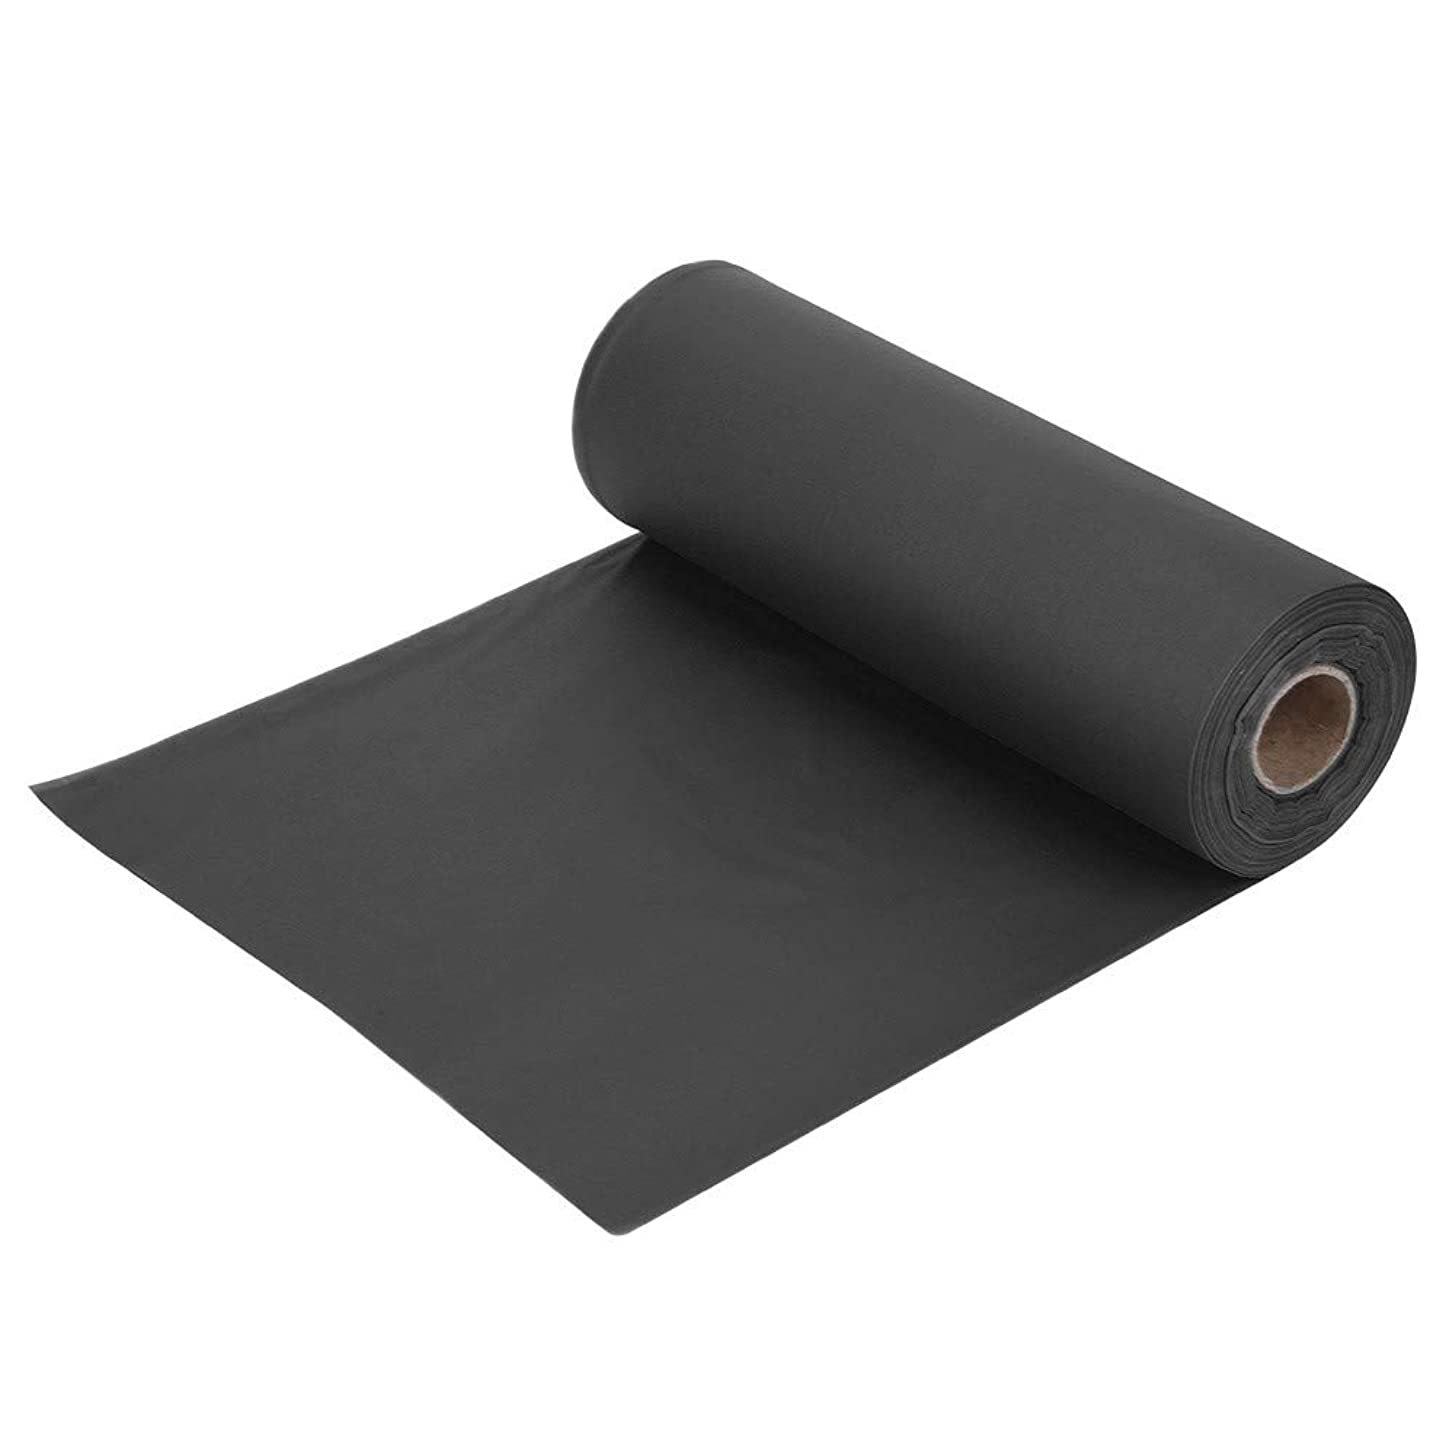 Halfbye Plastic Tablecover Roll, 39